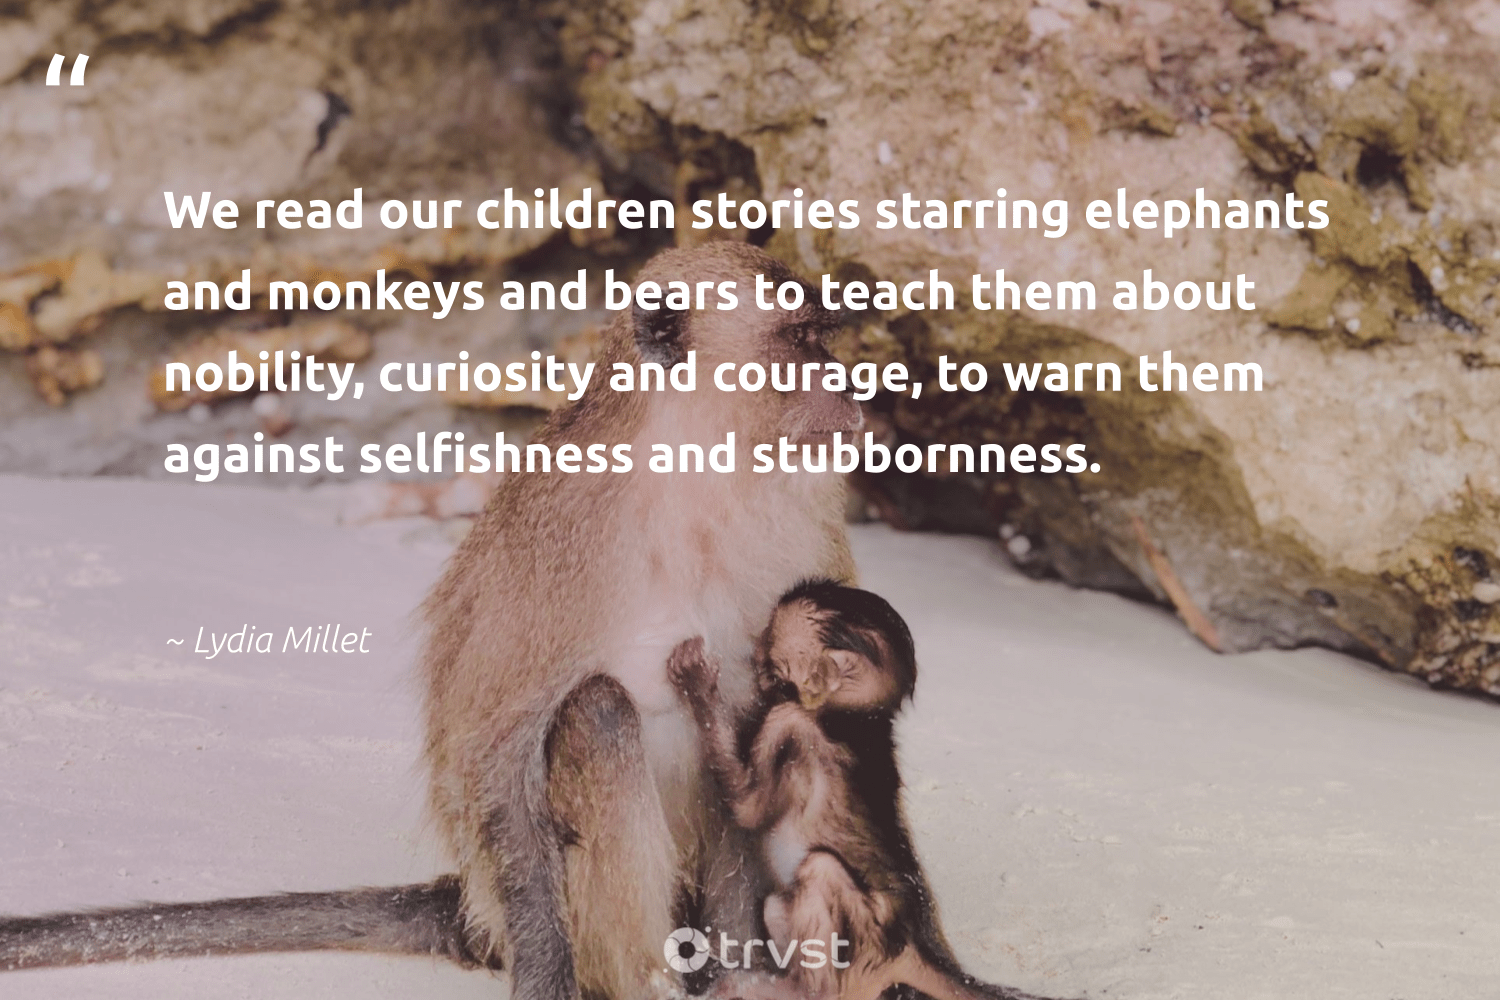 """We read our children stories starring elephants and monkeys and bears to teach them about nobility, curiosity and courage, to warn them against selfishness and stubbornness.""  - Lydia Millet #trvst #quotes #children #elephants #monkeys #bears #monkey #dogood #animalphotography #changetheworld #wildlifeprotection #takeaction"